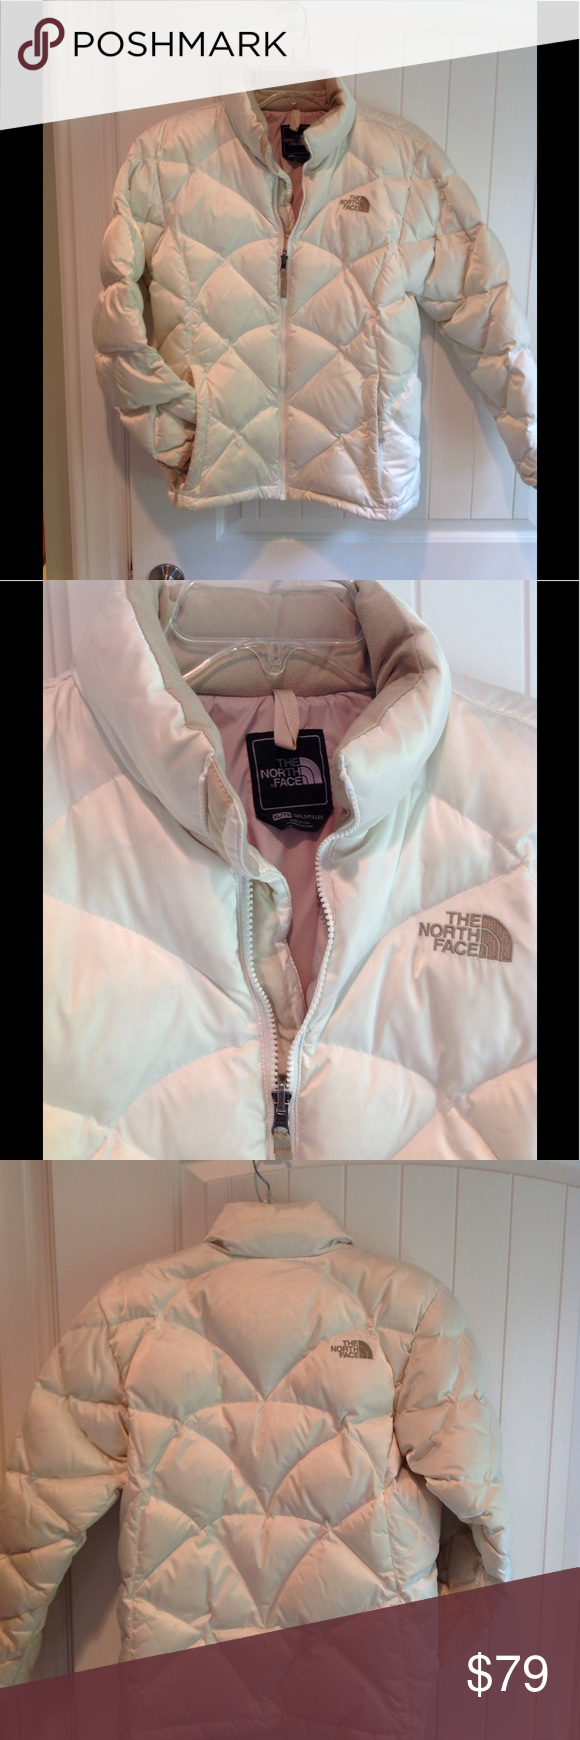 Northface Quilted Puffer Warm Winter Coat Girls Xl Girls Winter Coats Winter Coat Warmest Winter Outfits [ 1740 x 580 Pixel ]